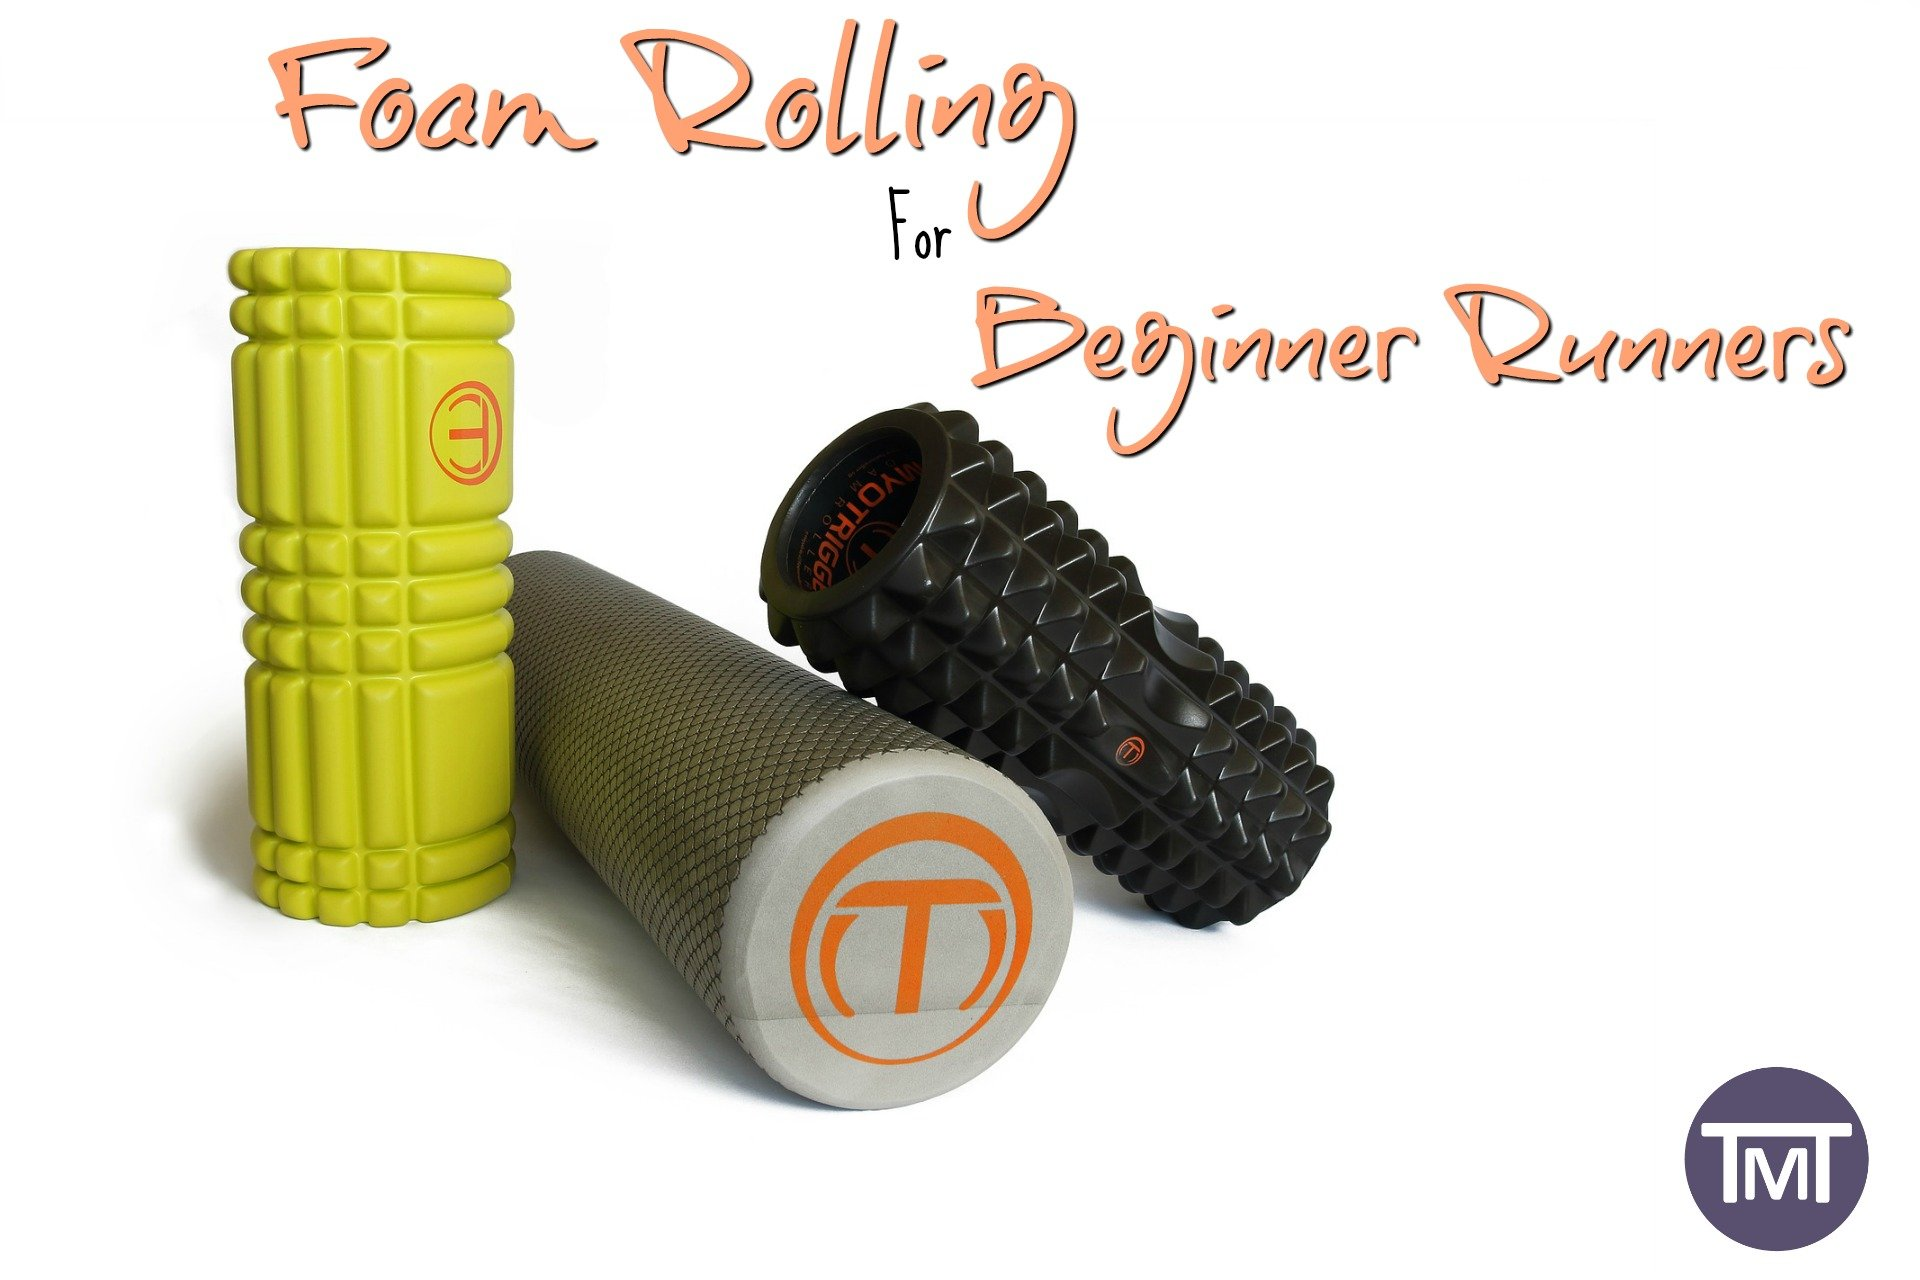 Foam Rolling For Beginner Runners